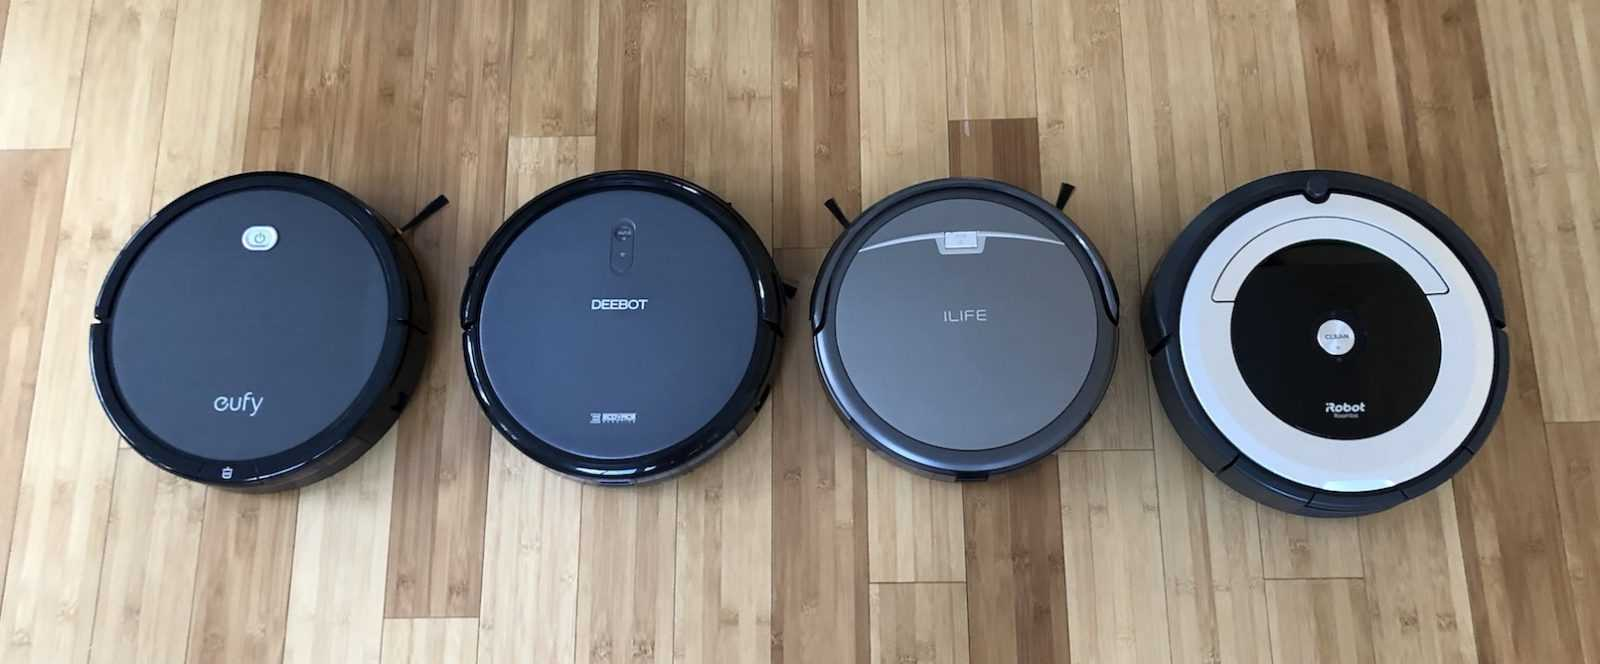 Photo of Robot Vacuum